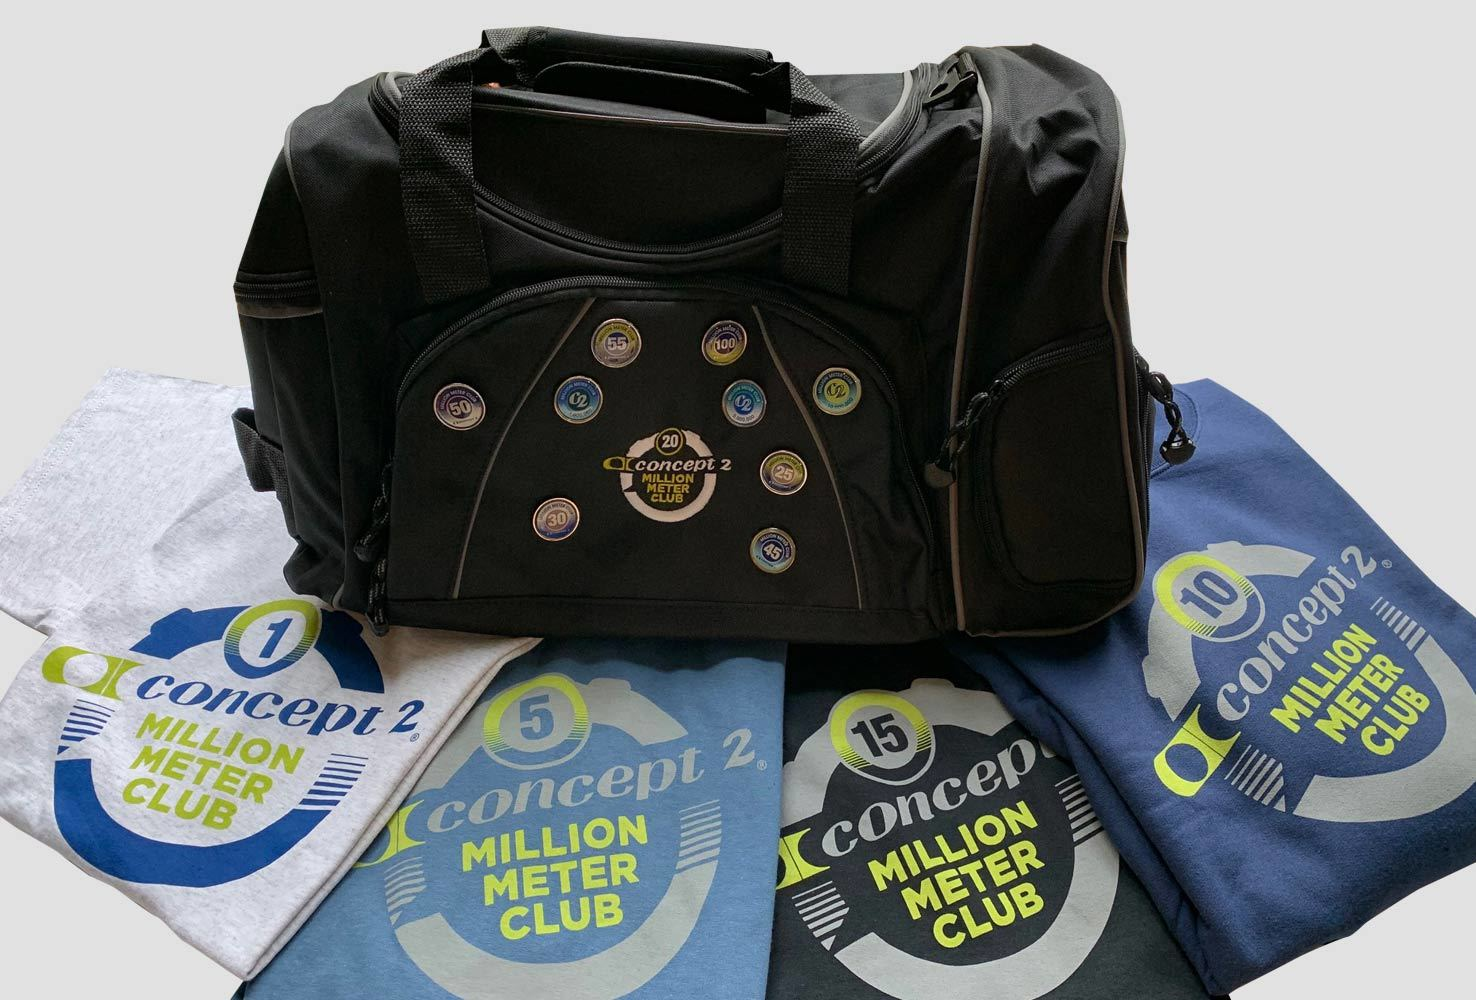 Concept2 Million meter club rewards include a bag, pins and t-shirts along the way